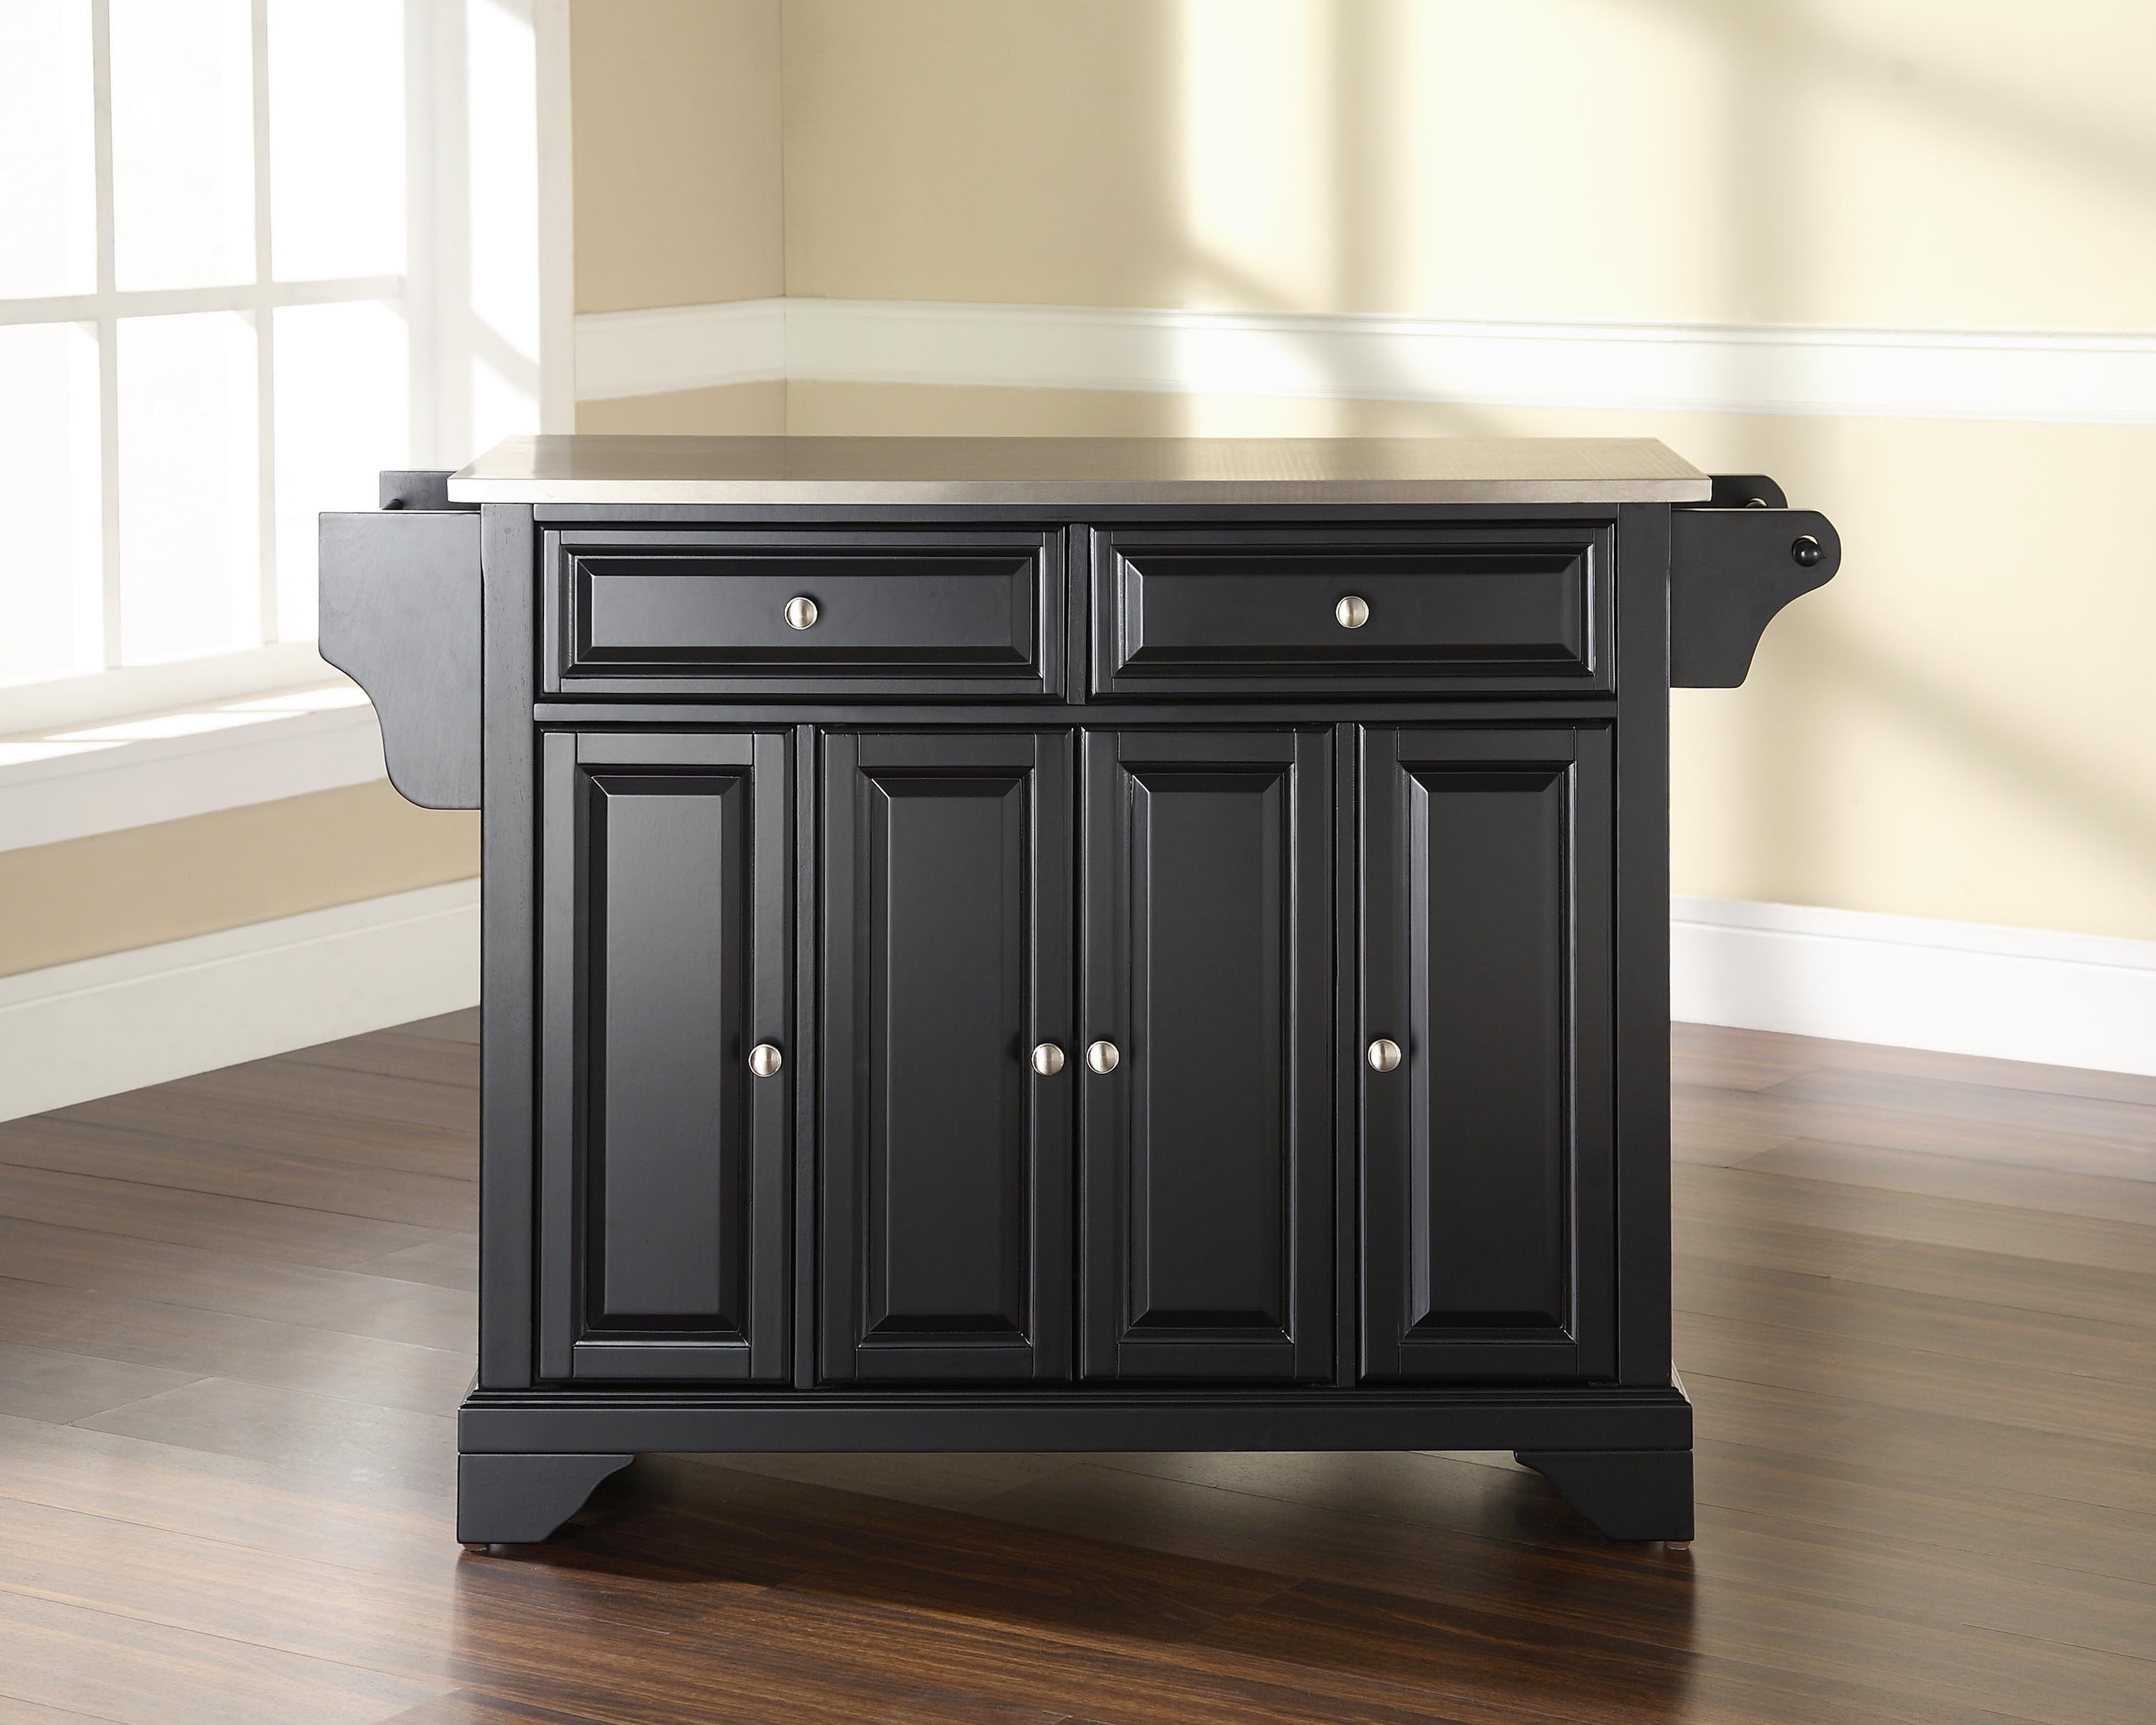 Furniture Stainless Steel Top Kitchen Island Black